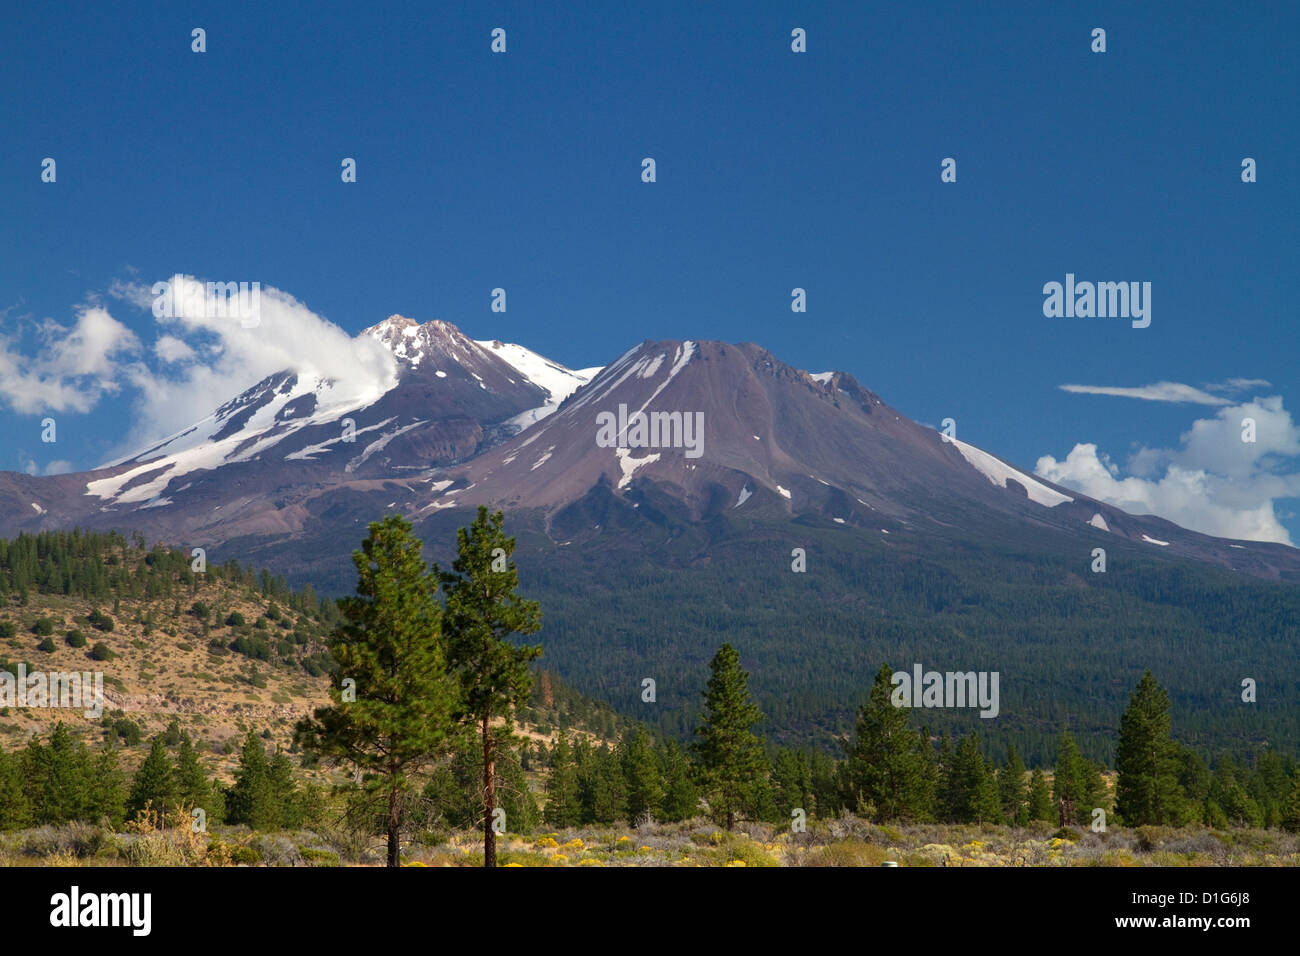 Mount Shasta north facing side located in Siskiyou County, California, USA. - Stock Image